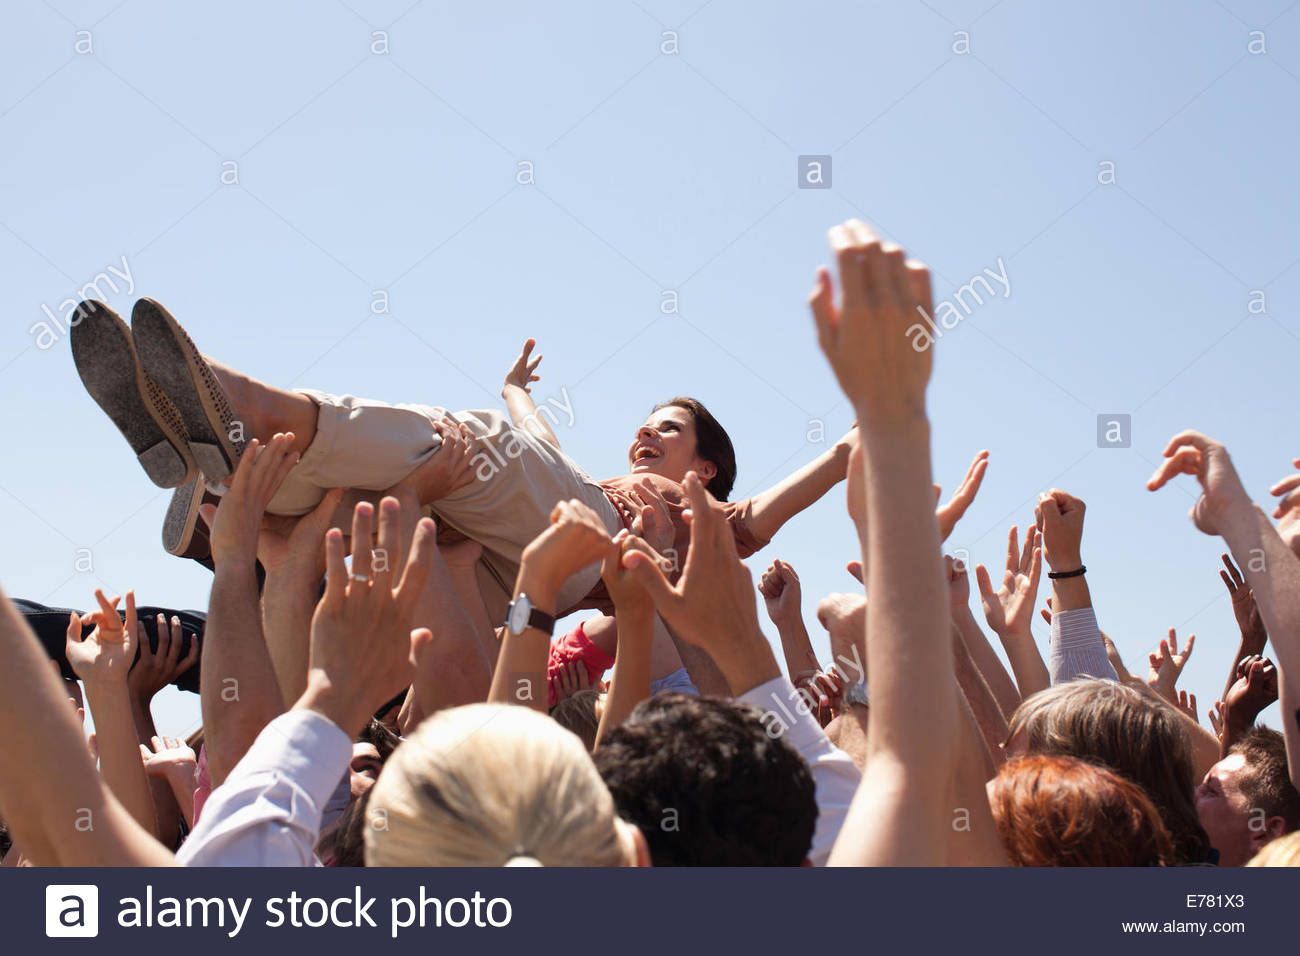 Woman crowd surfing - Stock Image